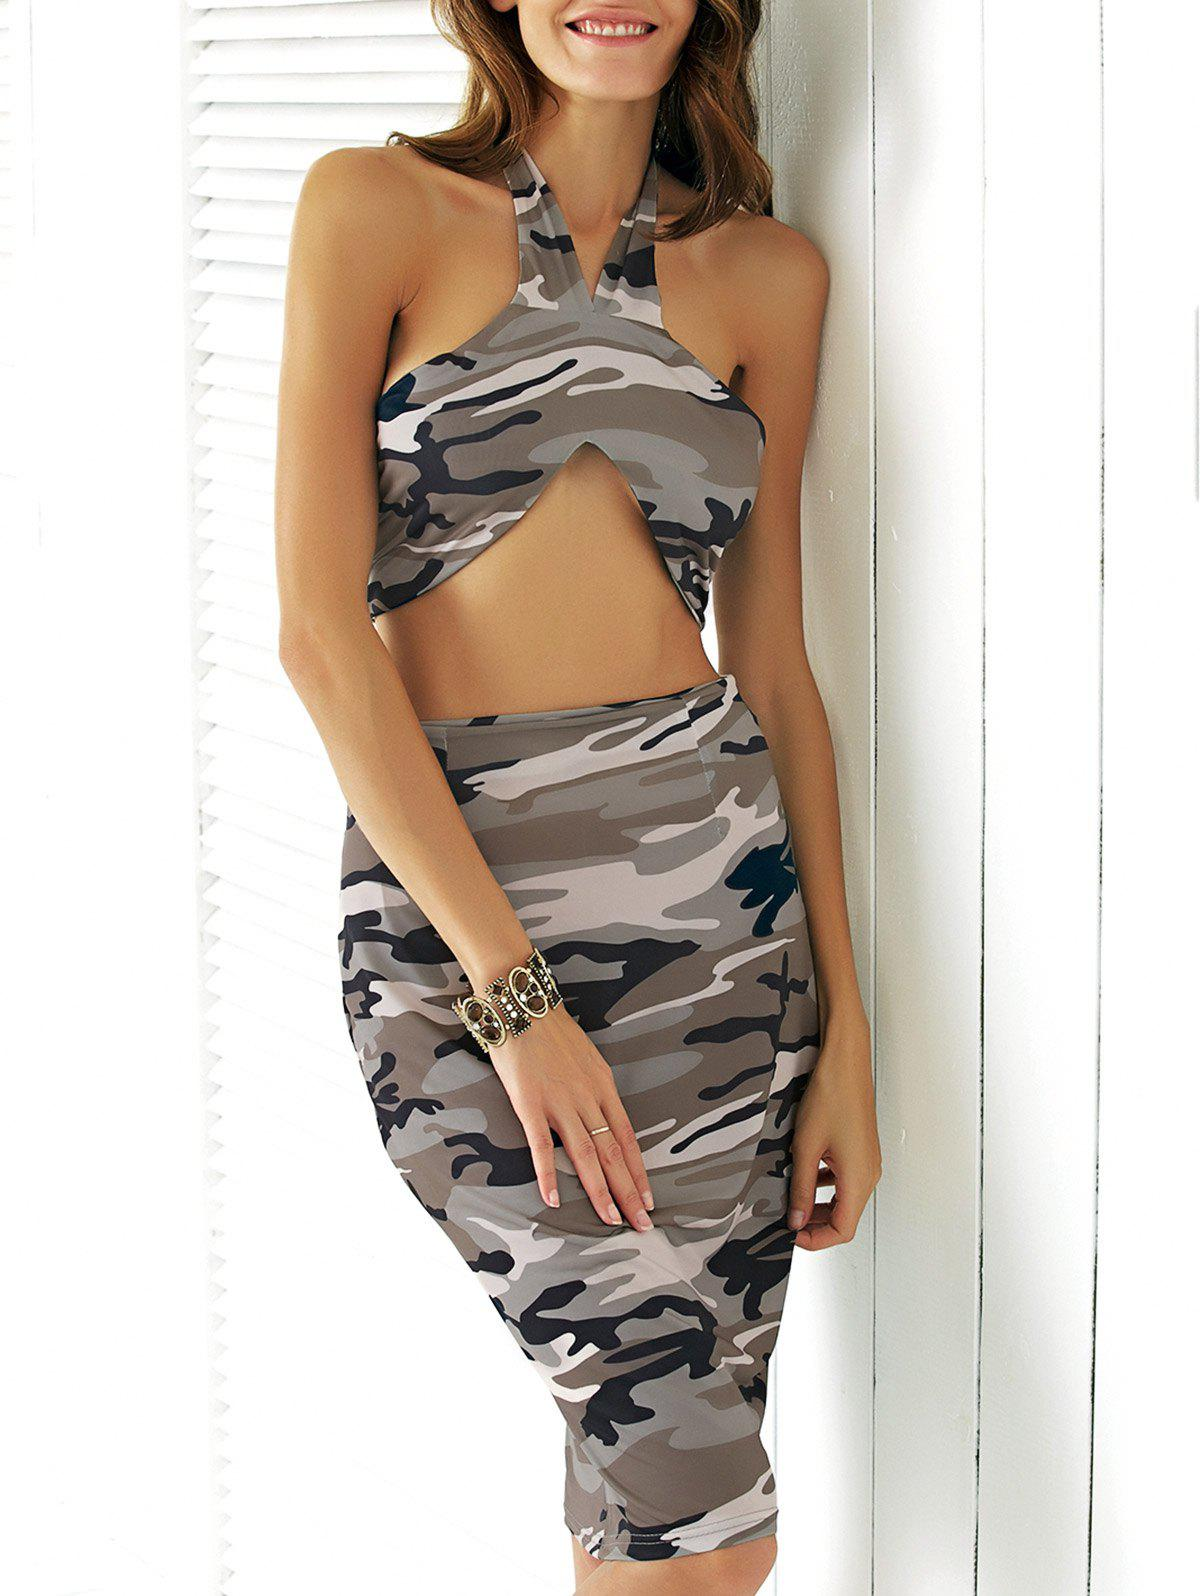 Camo Halter Crop Top + Skirt 2 Piece Club Bodycon Dress - URBAN CAMOUFLAGE XL